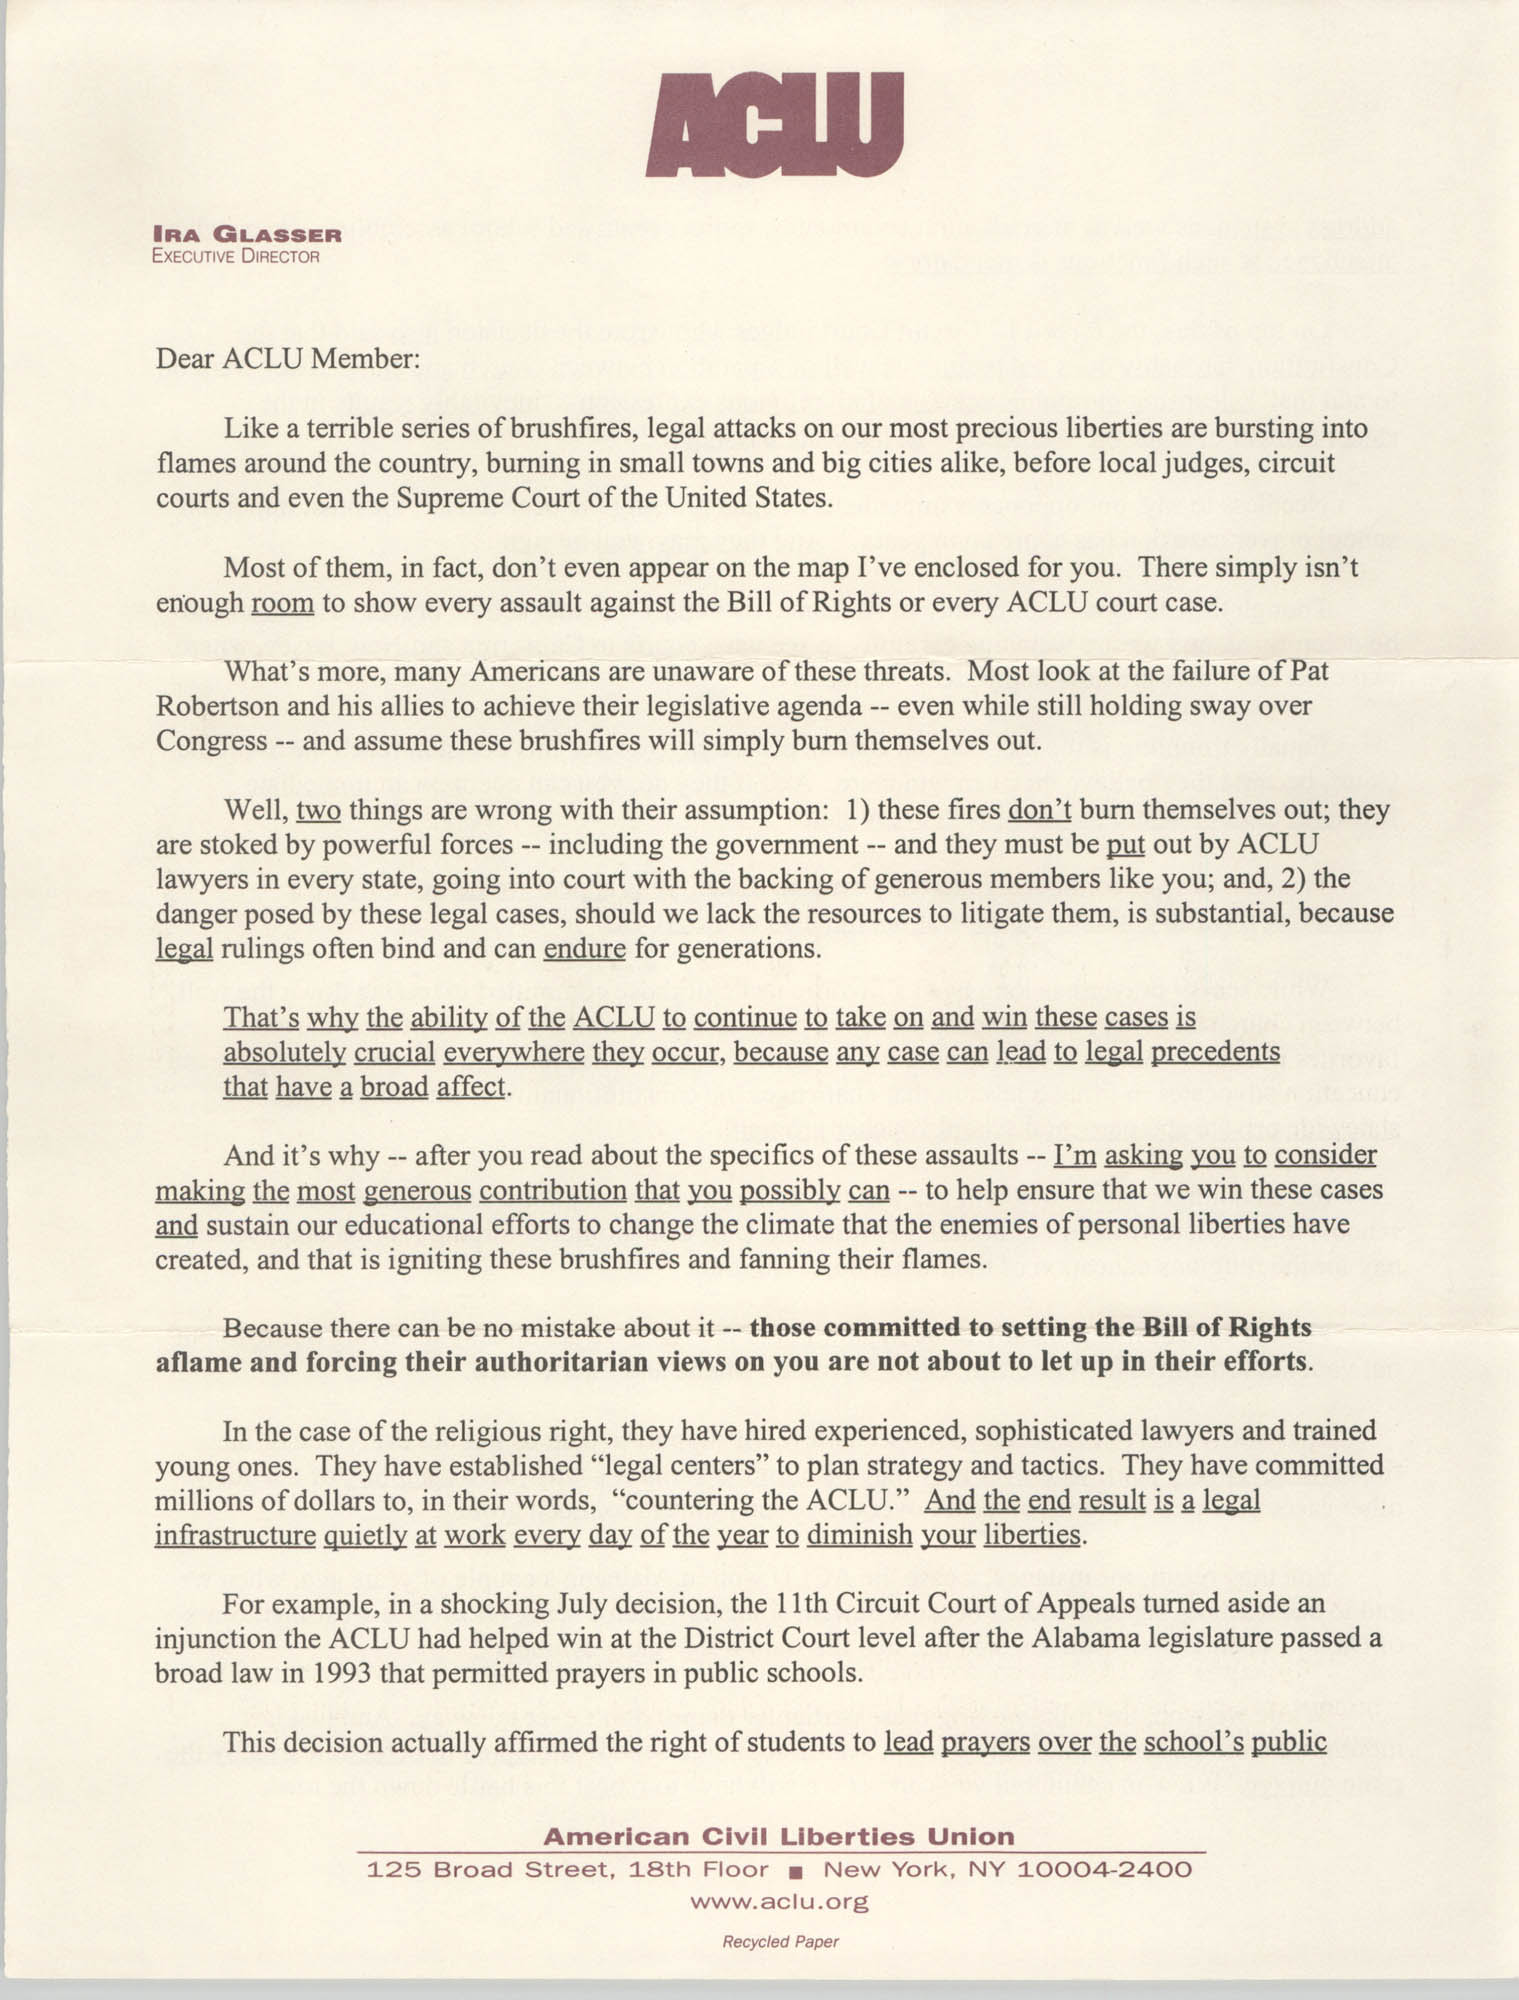 Letter from Ira Glasser to ACLU Members, 1997